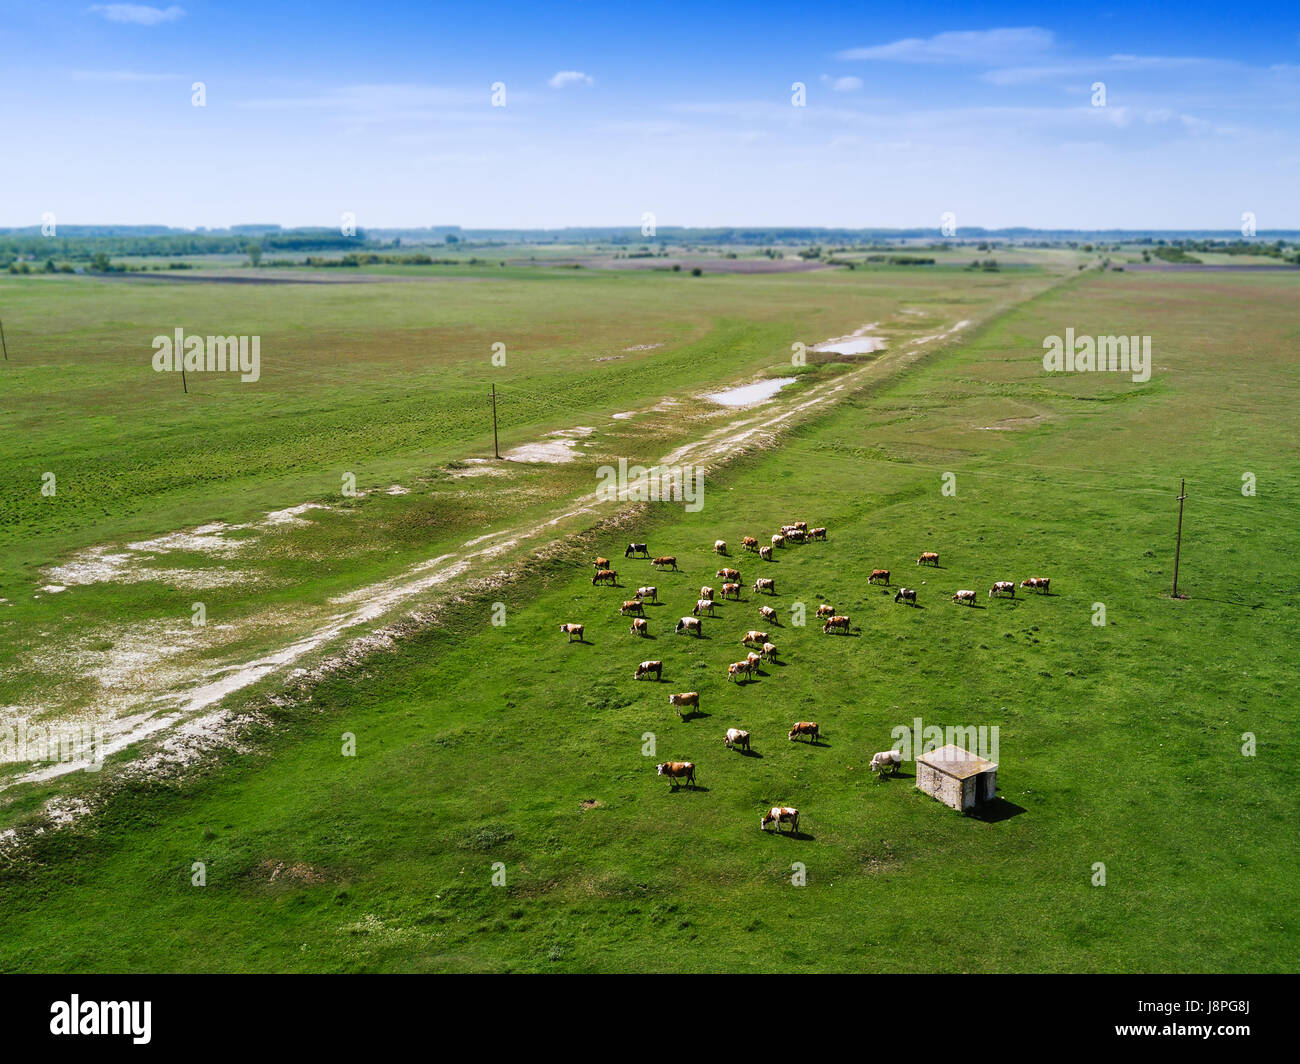 Aerial view of cows herd grazing on pasture field, drone point of view - Stock Image